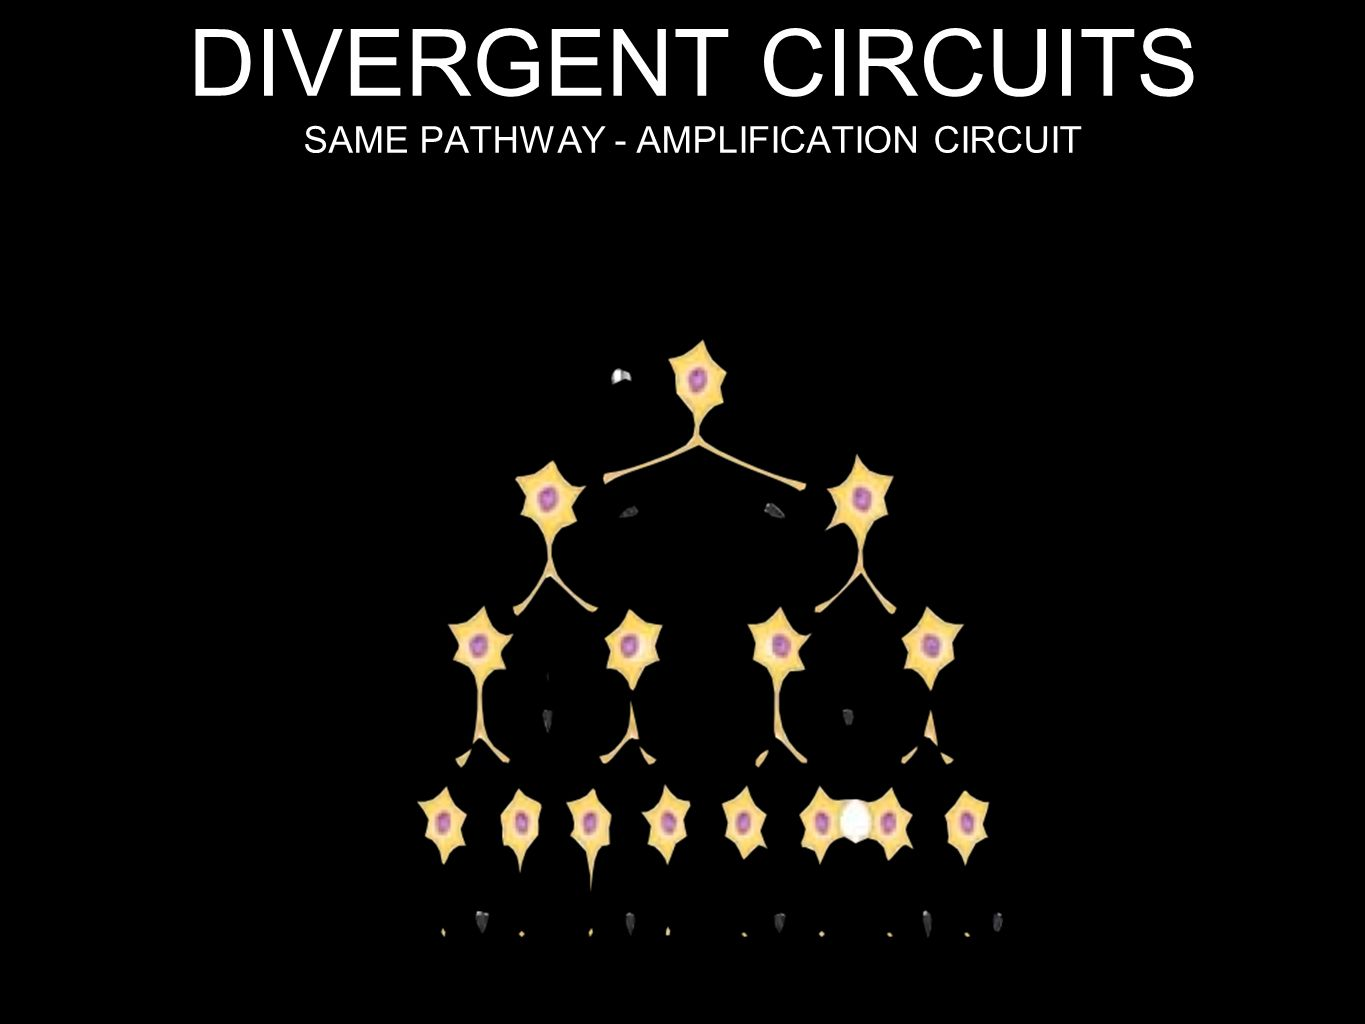 DIVERGENT CIRCUITS SAME PATHWAY - AMPLIFICATION CIRCUIT